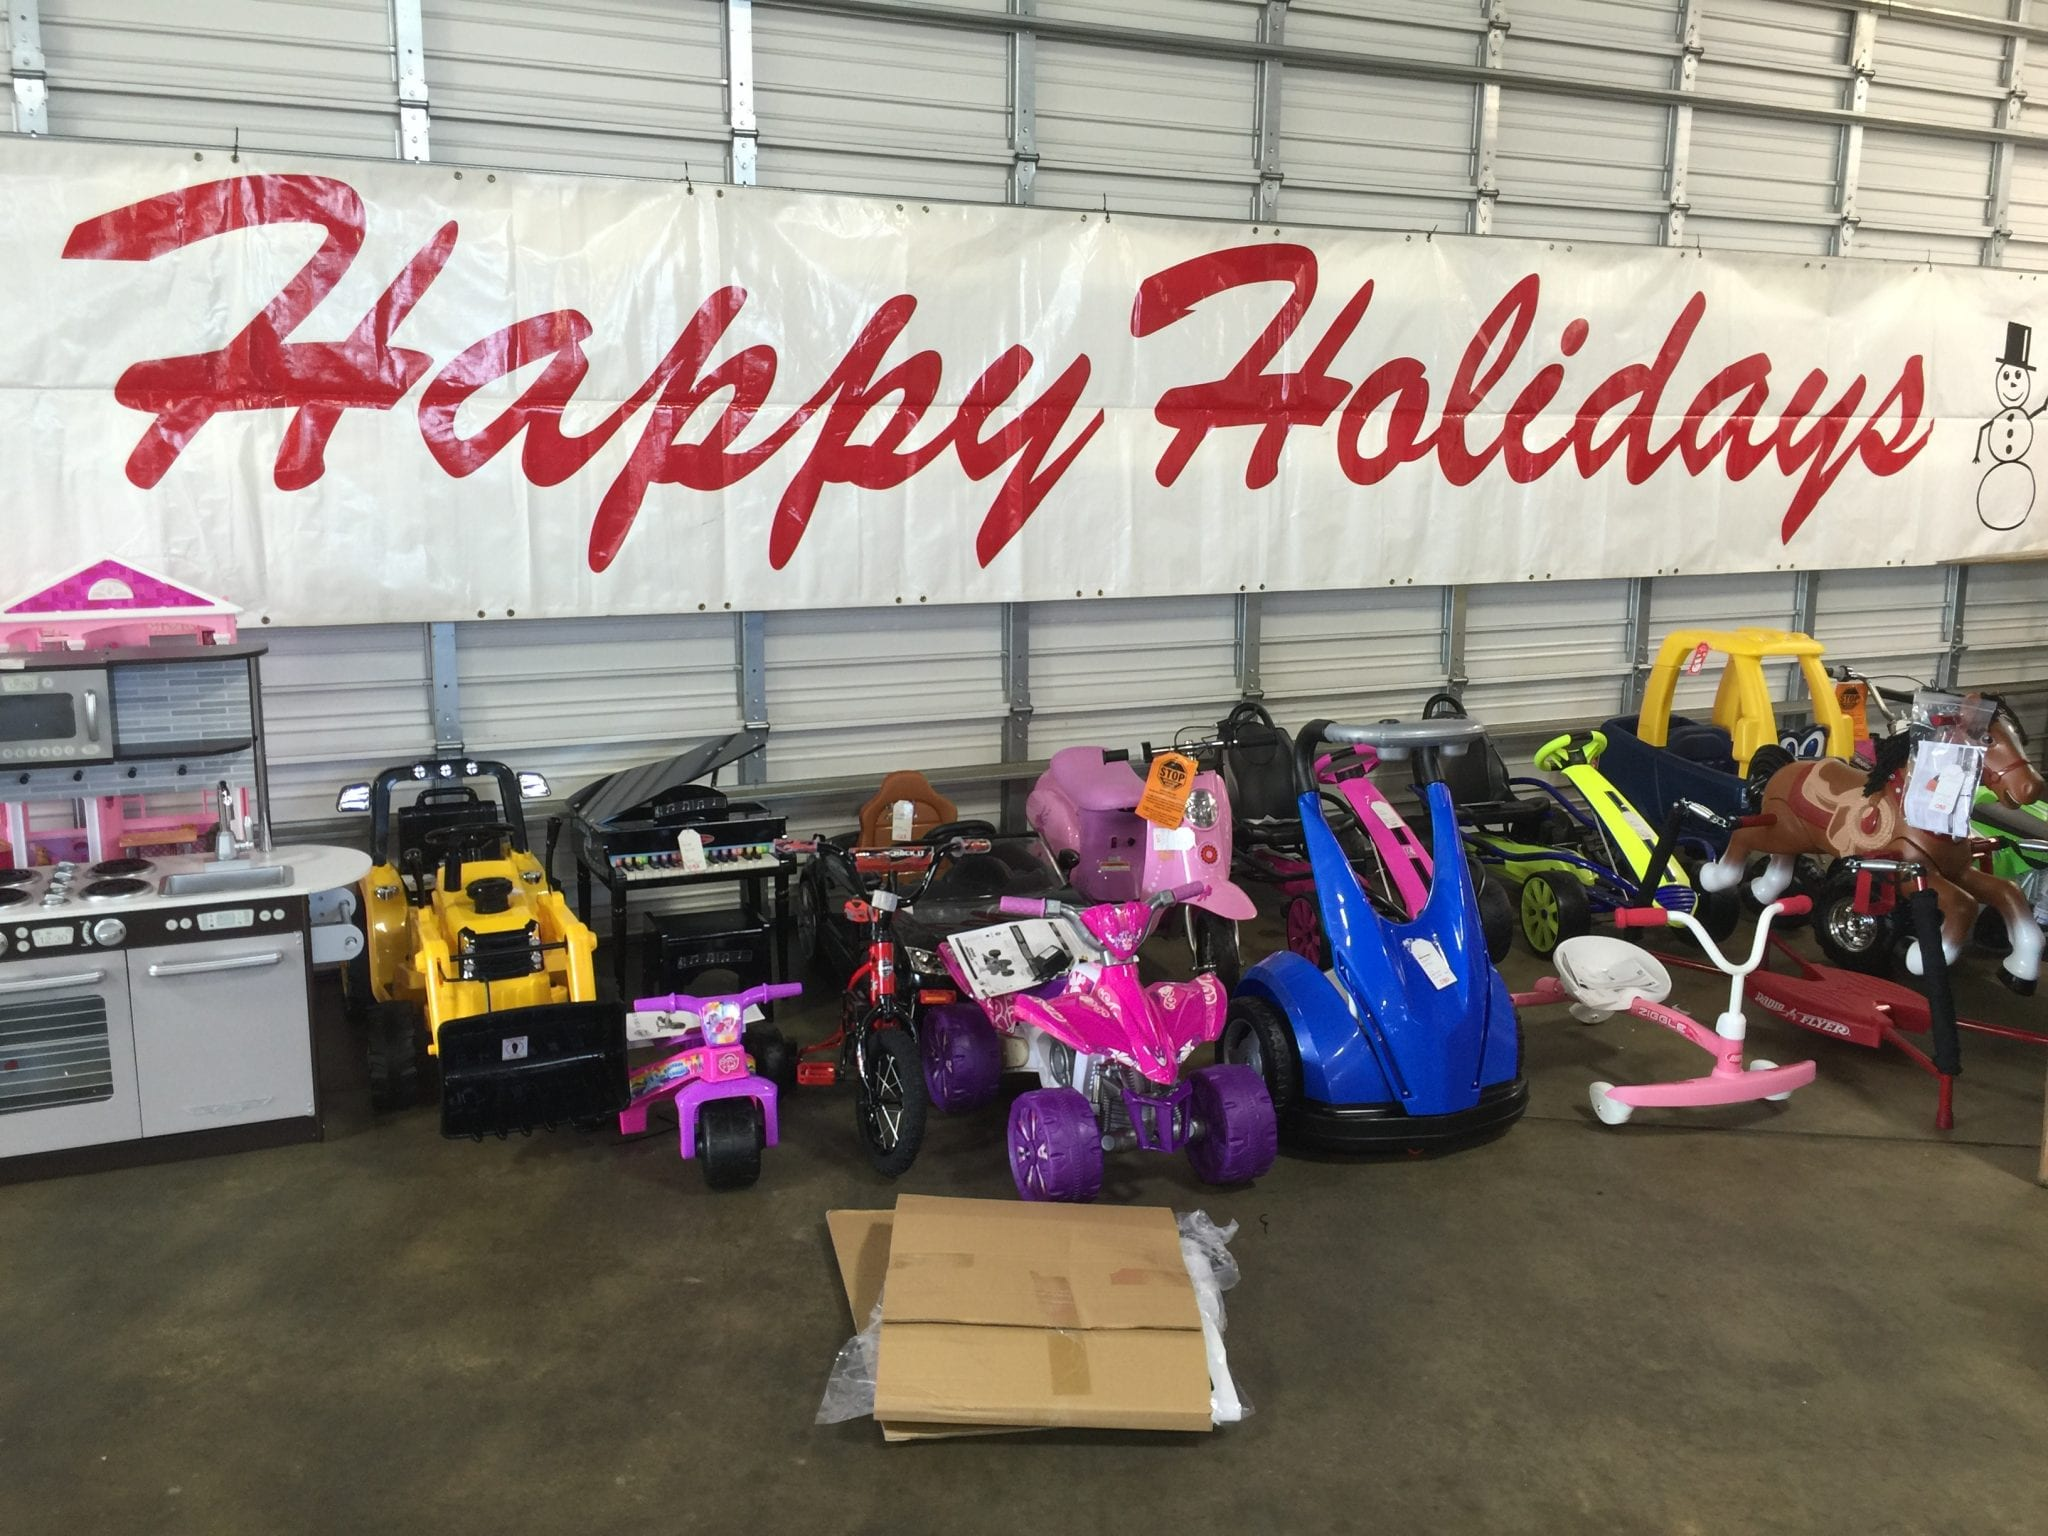 red river chevrolet in bossier city offers free holiday gift and toy assembly bossier press. Black Bedroom Furniture Sets. Home Design Ideas